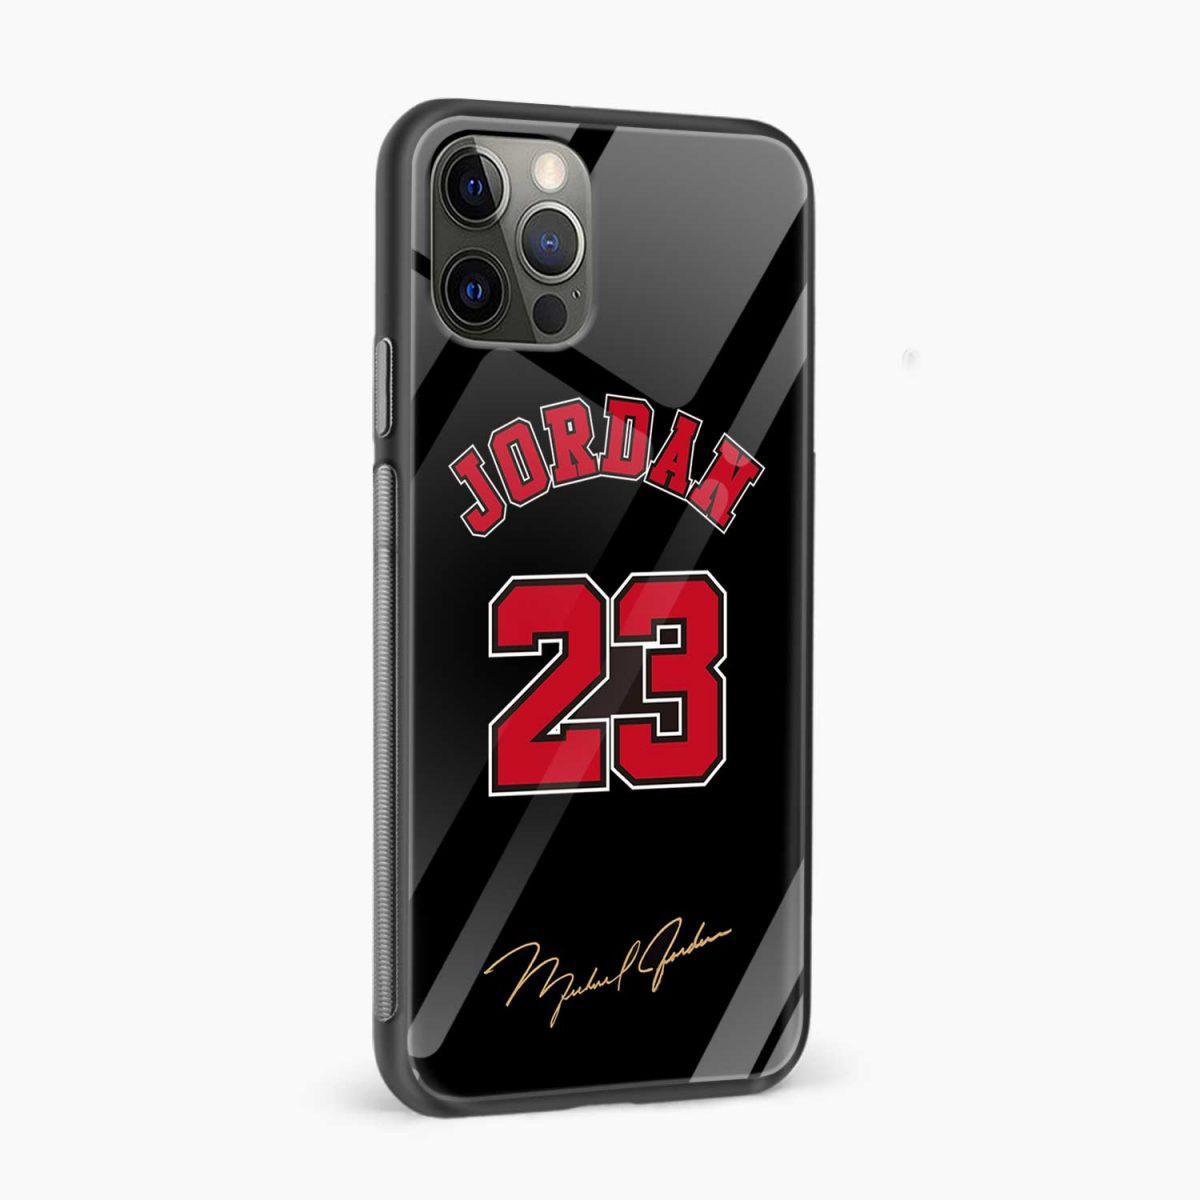 jordan 23 iphone pro back cover side view